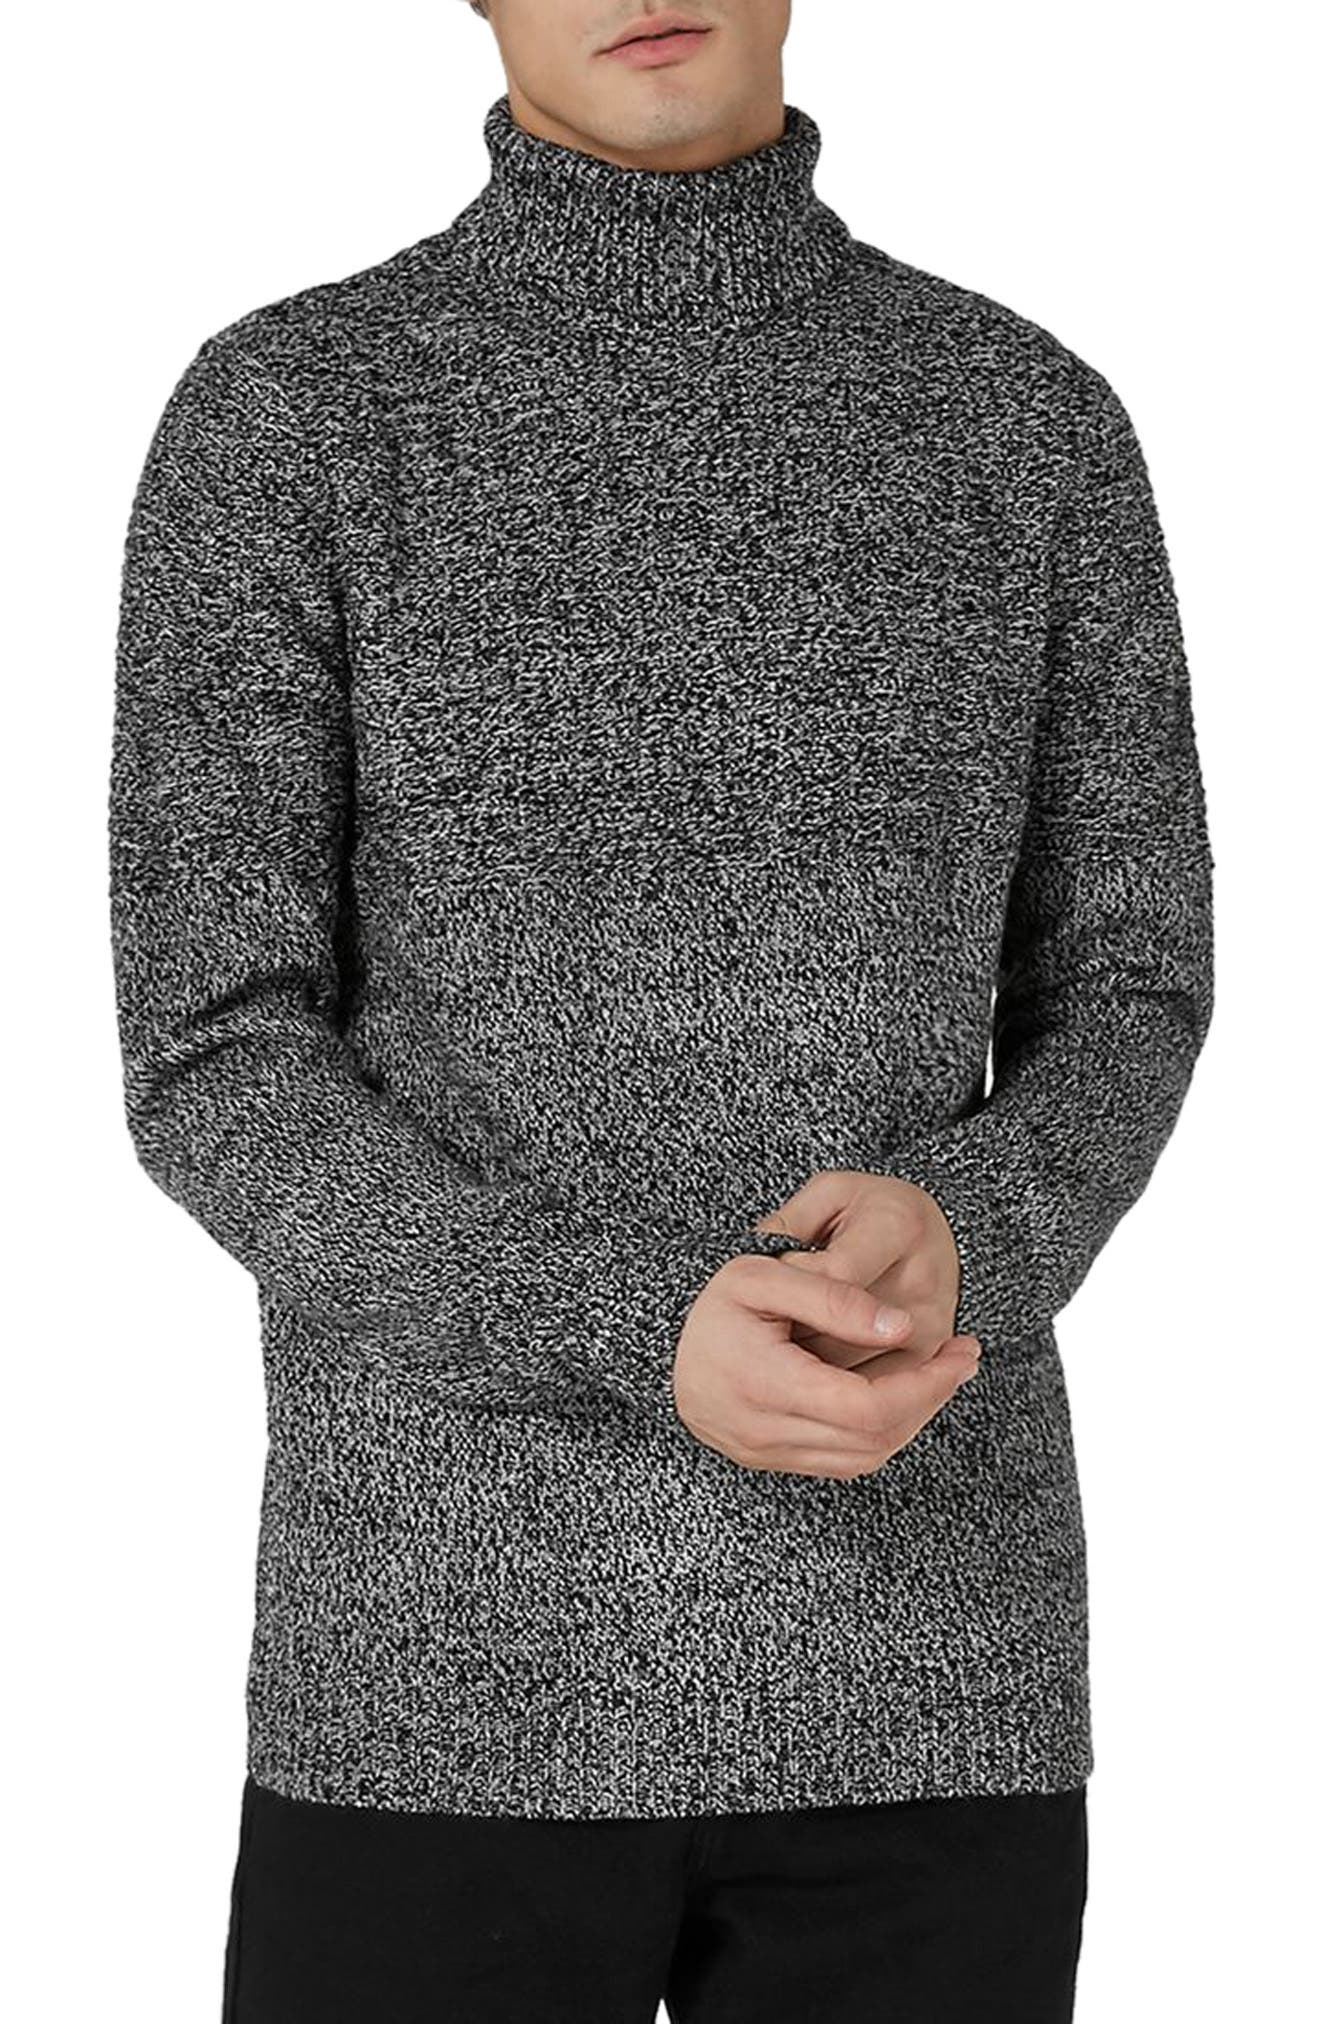 Twist Roll Neck Sweater,                         Main,                         color, 020